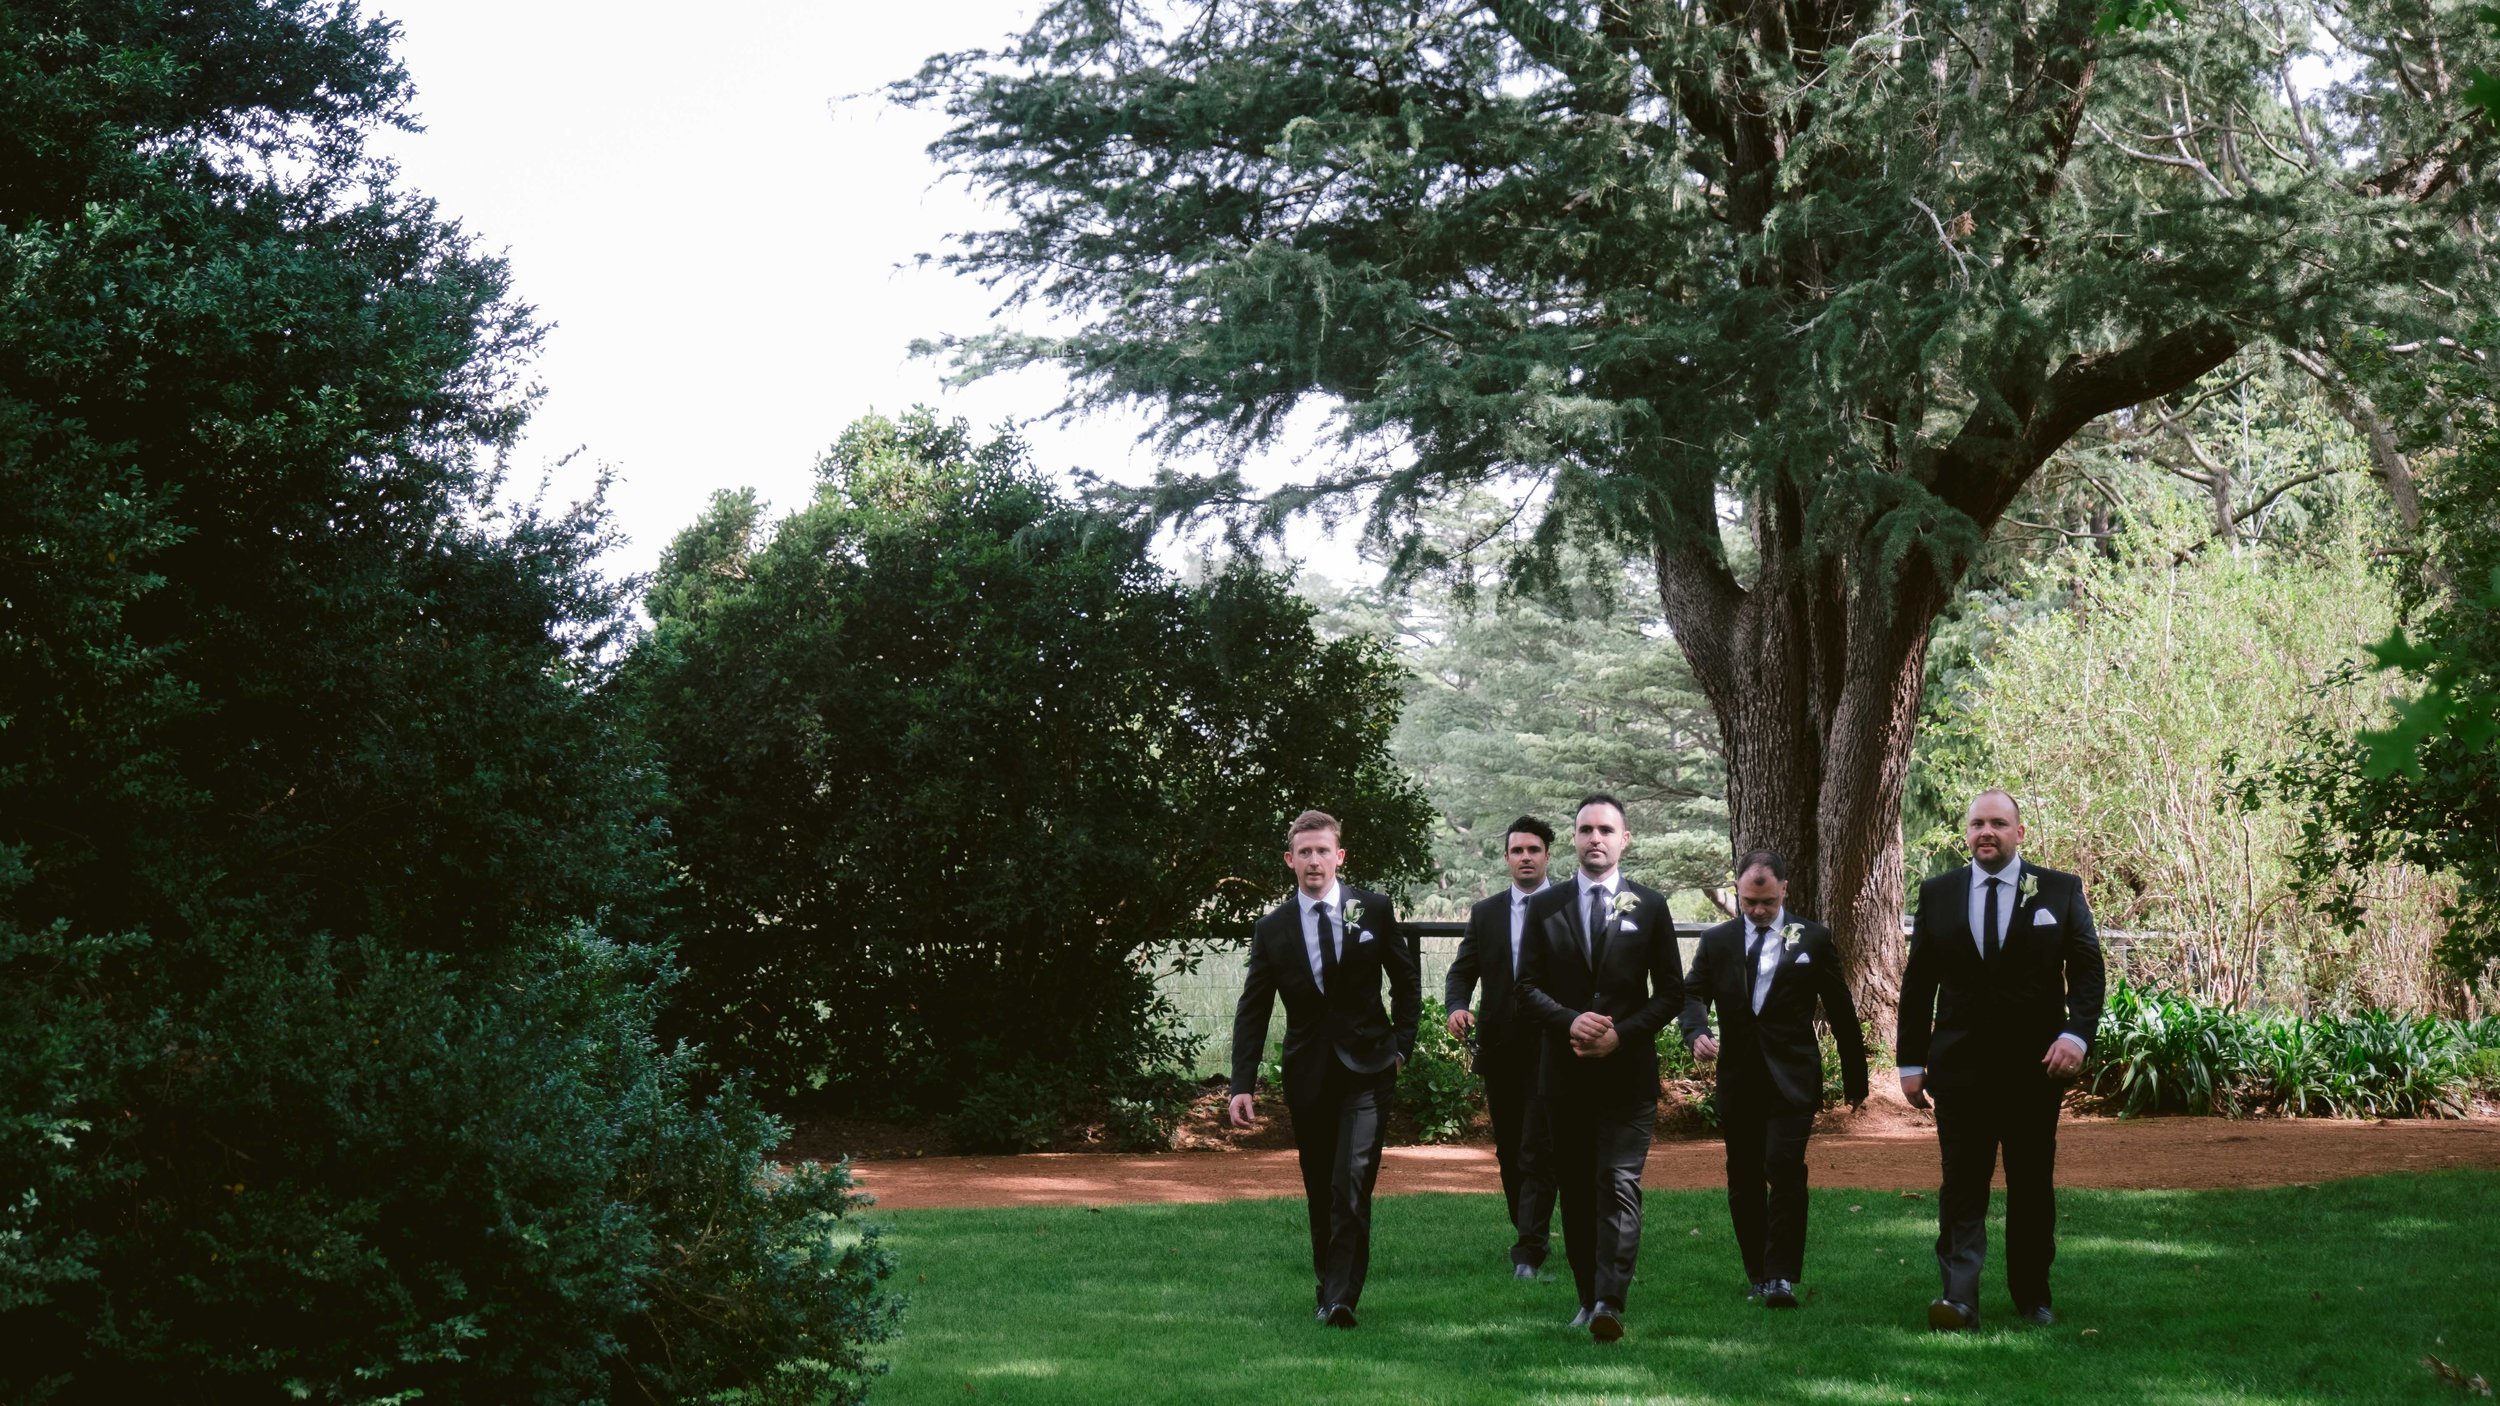 Courtney and Nash Bendooley Estate Southern Highlands Wedding by Milton Gan Photography 02.jpg